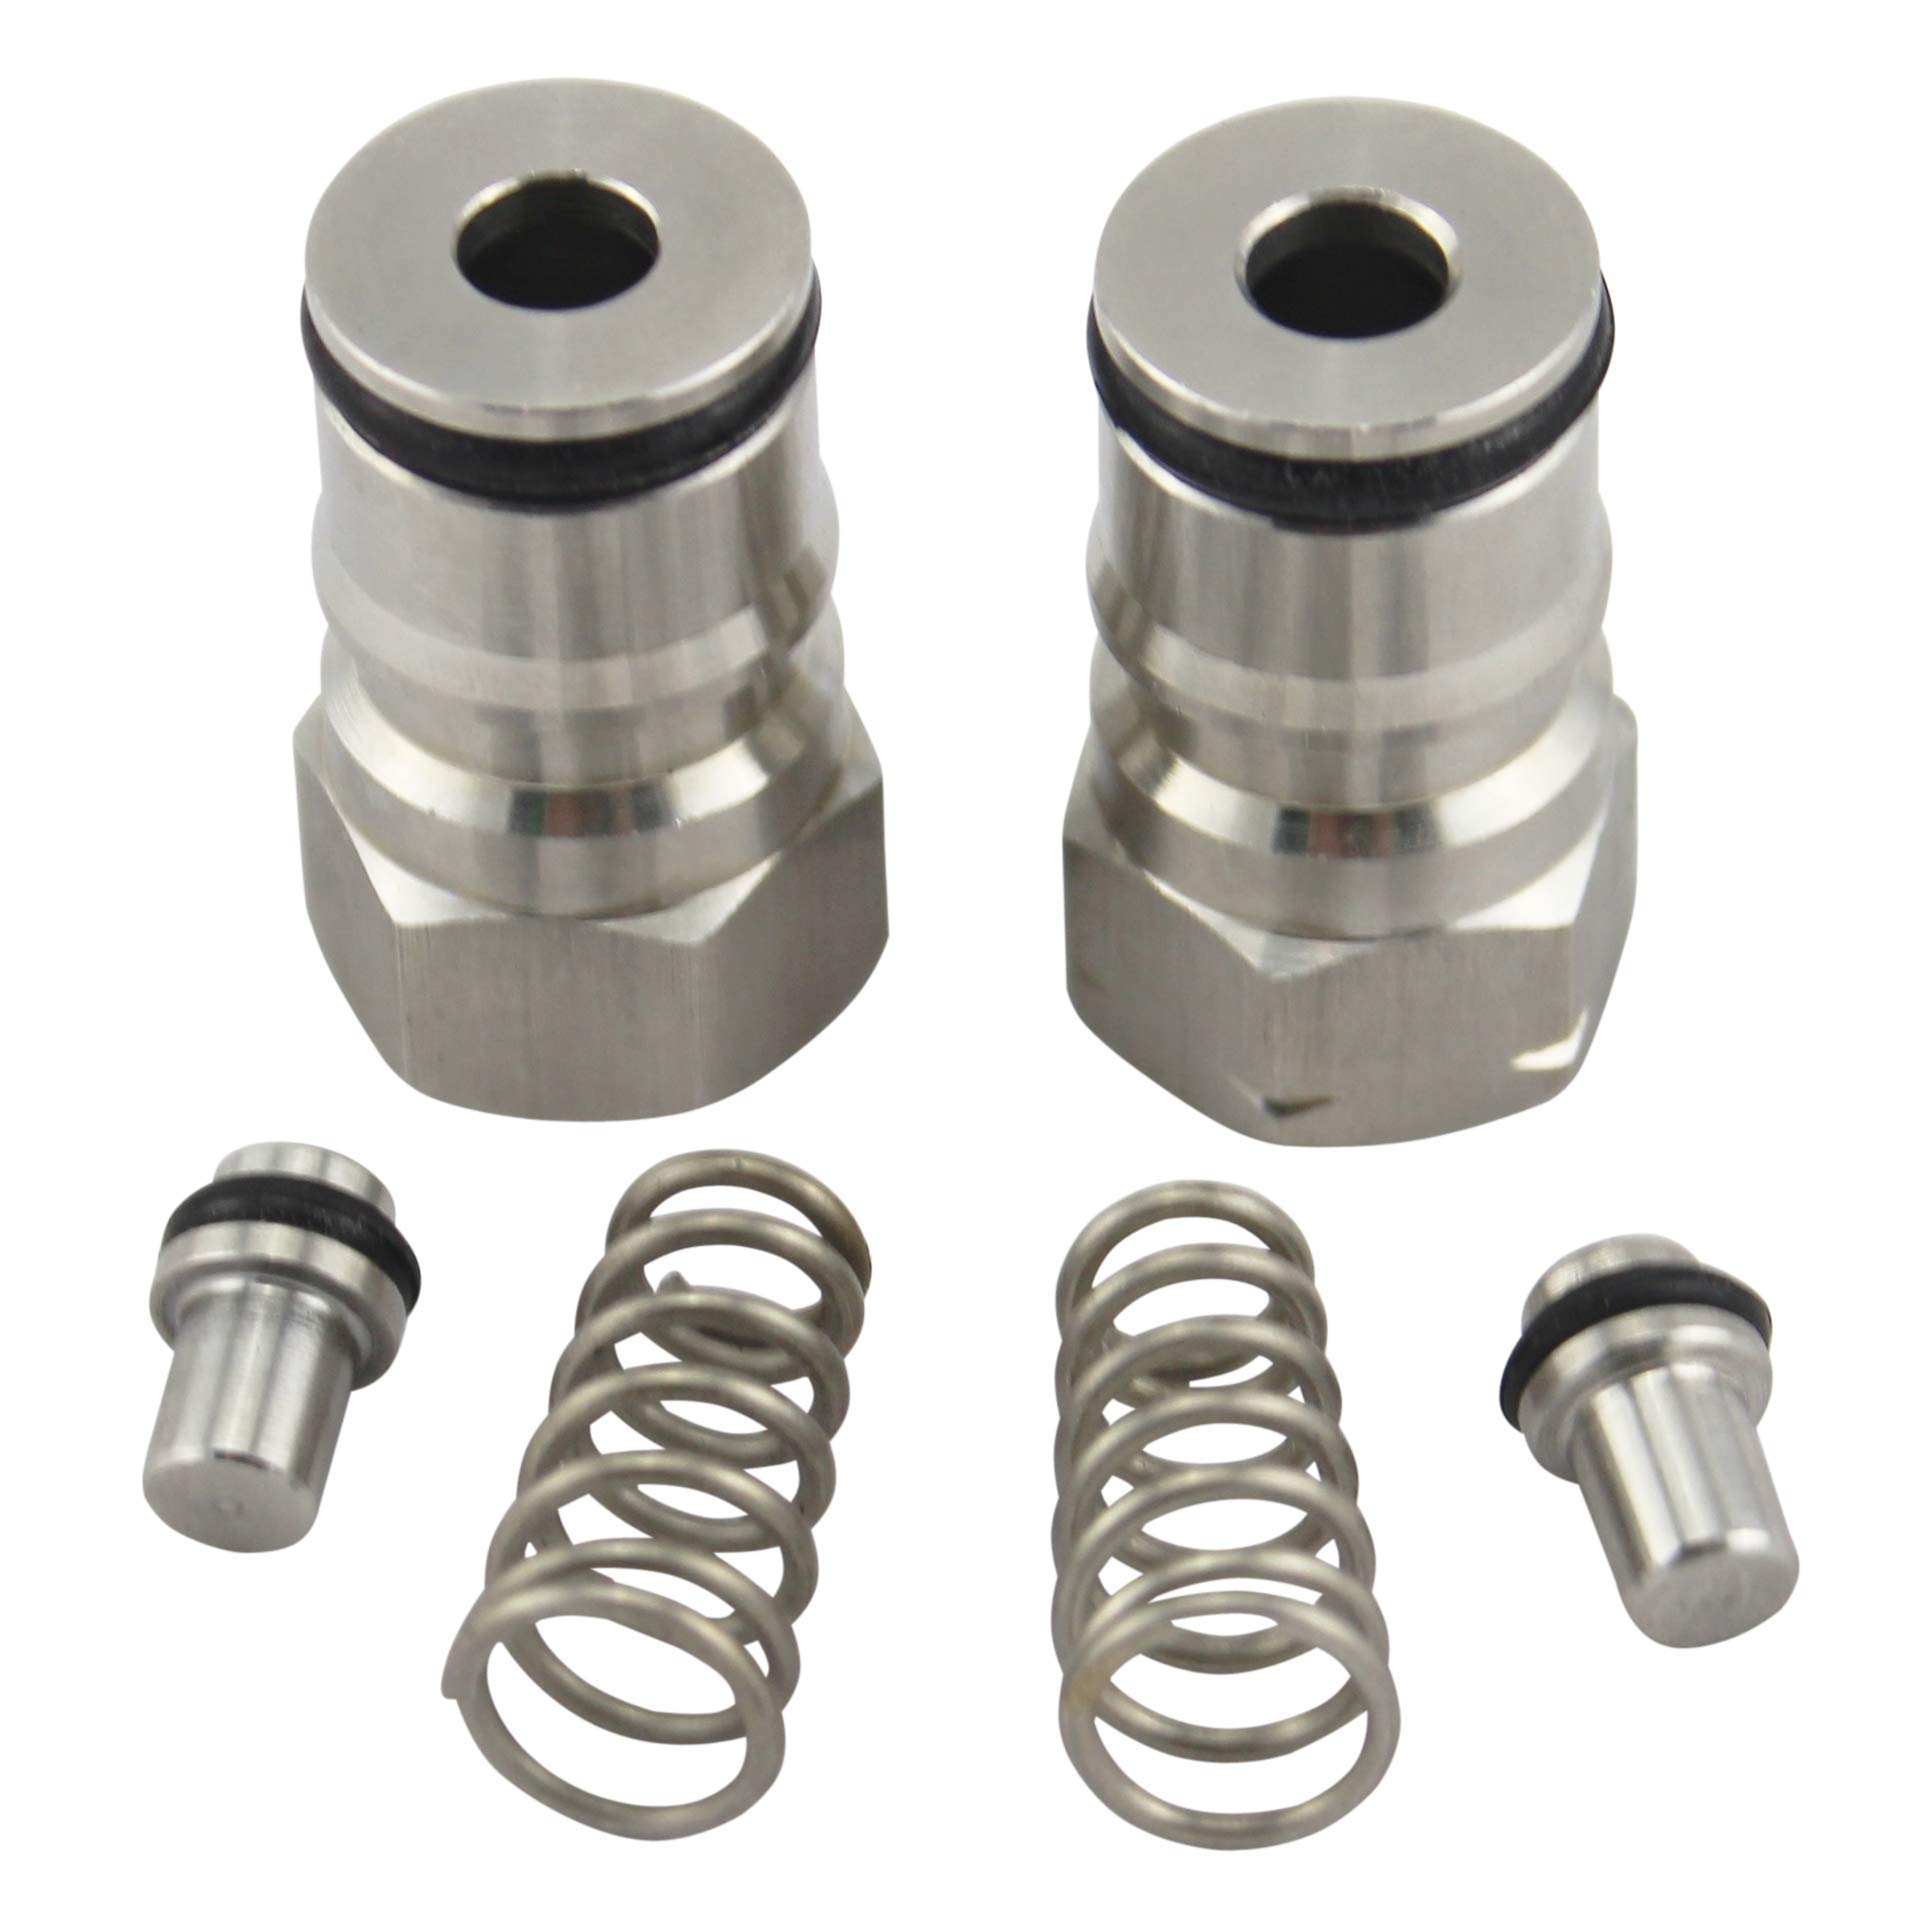 The Weekend Brewer Ball Lock Keg Posts Set Stainless Steel (Both)